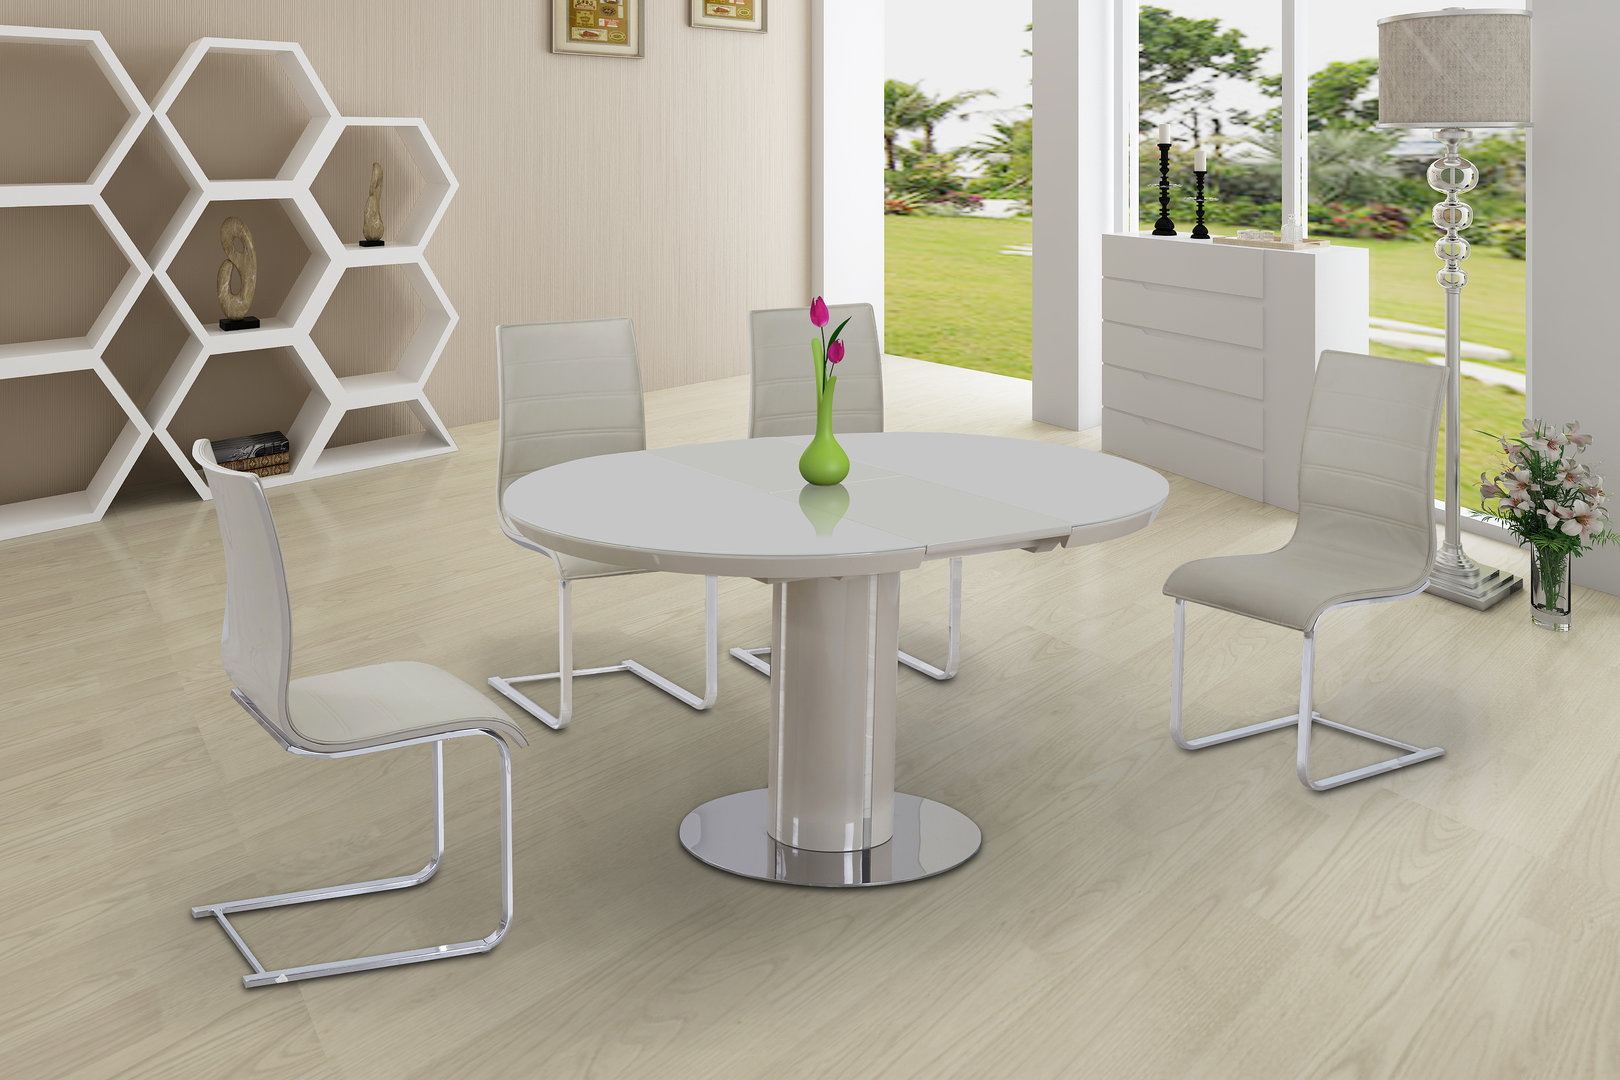 high top table chair set office offers round cream glass gloss dining & 6 chairs - homegenies